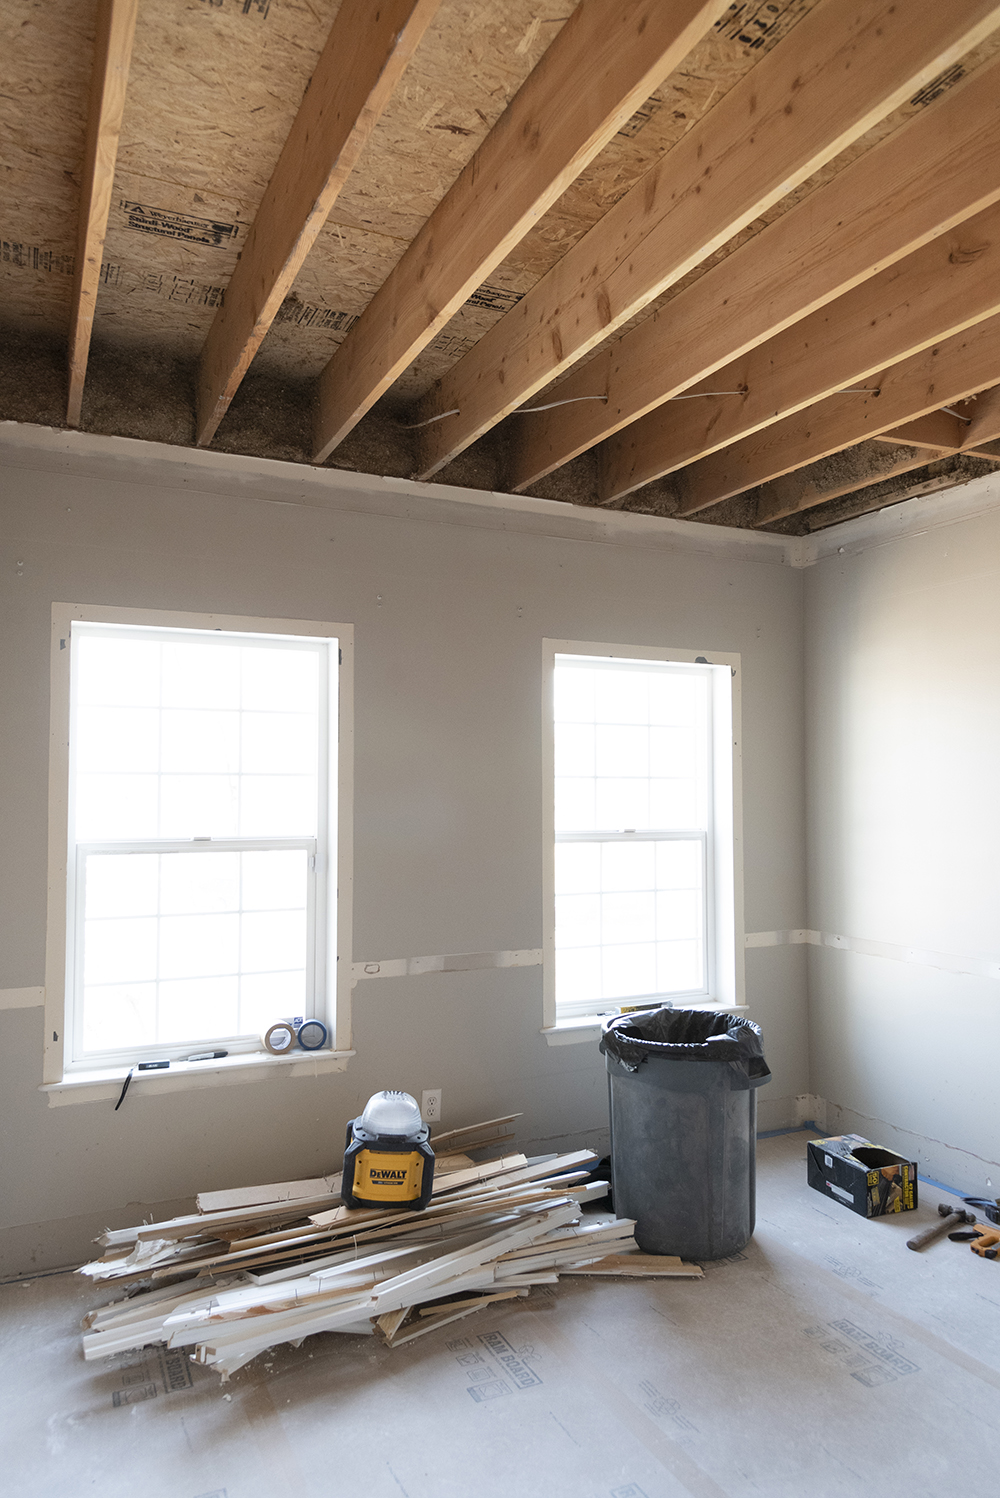 Office Renovation Update (Demo & Planning) - roomfortuesday.com